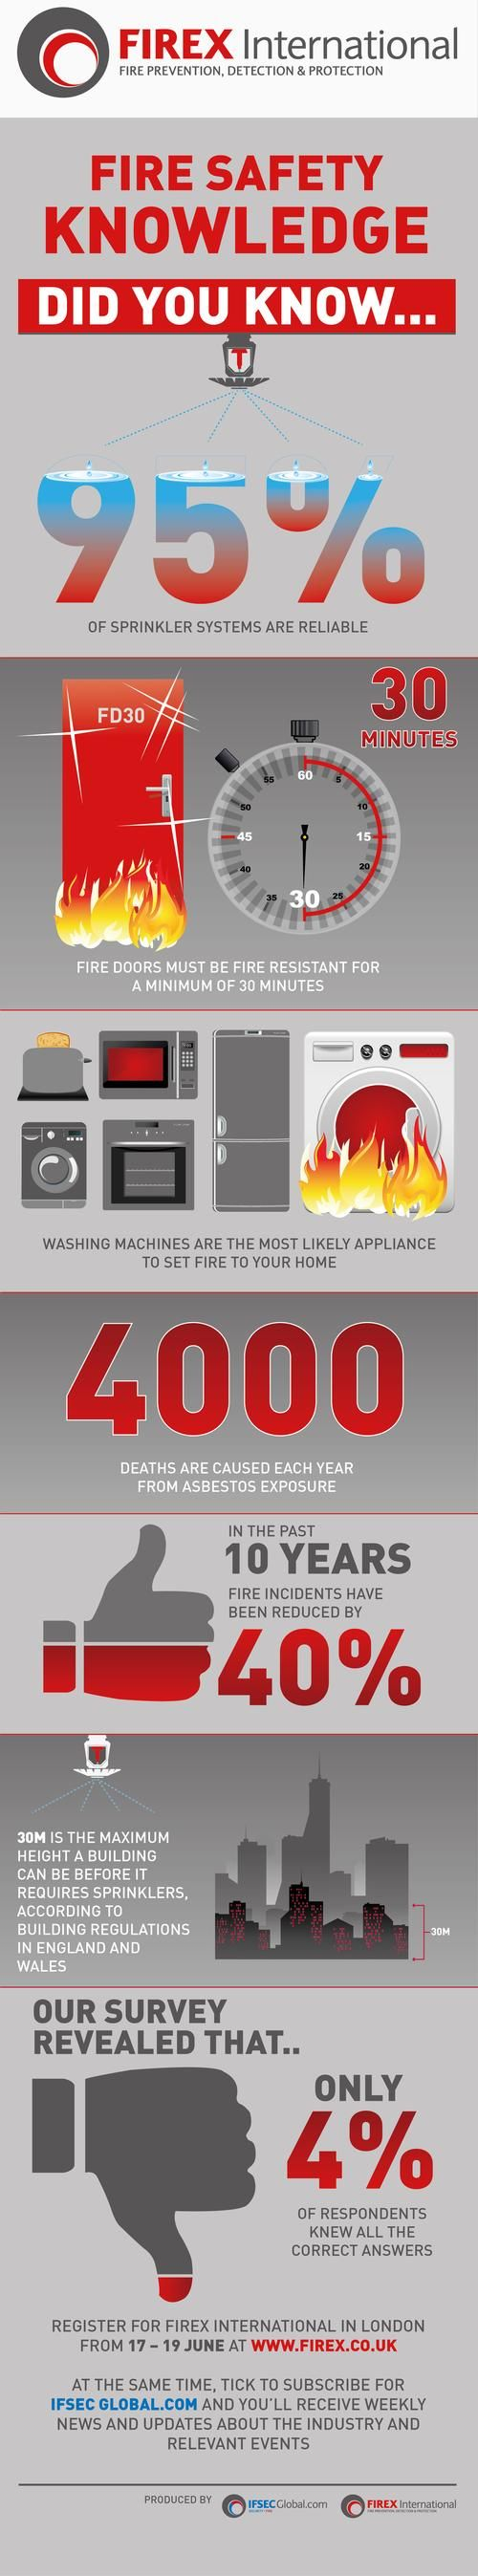 Infographic: Did You Know These Fire Safety Facts? - Adam Bannister | IFSEC Global